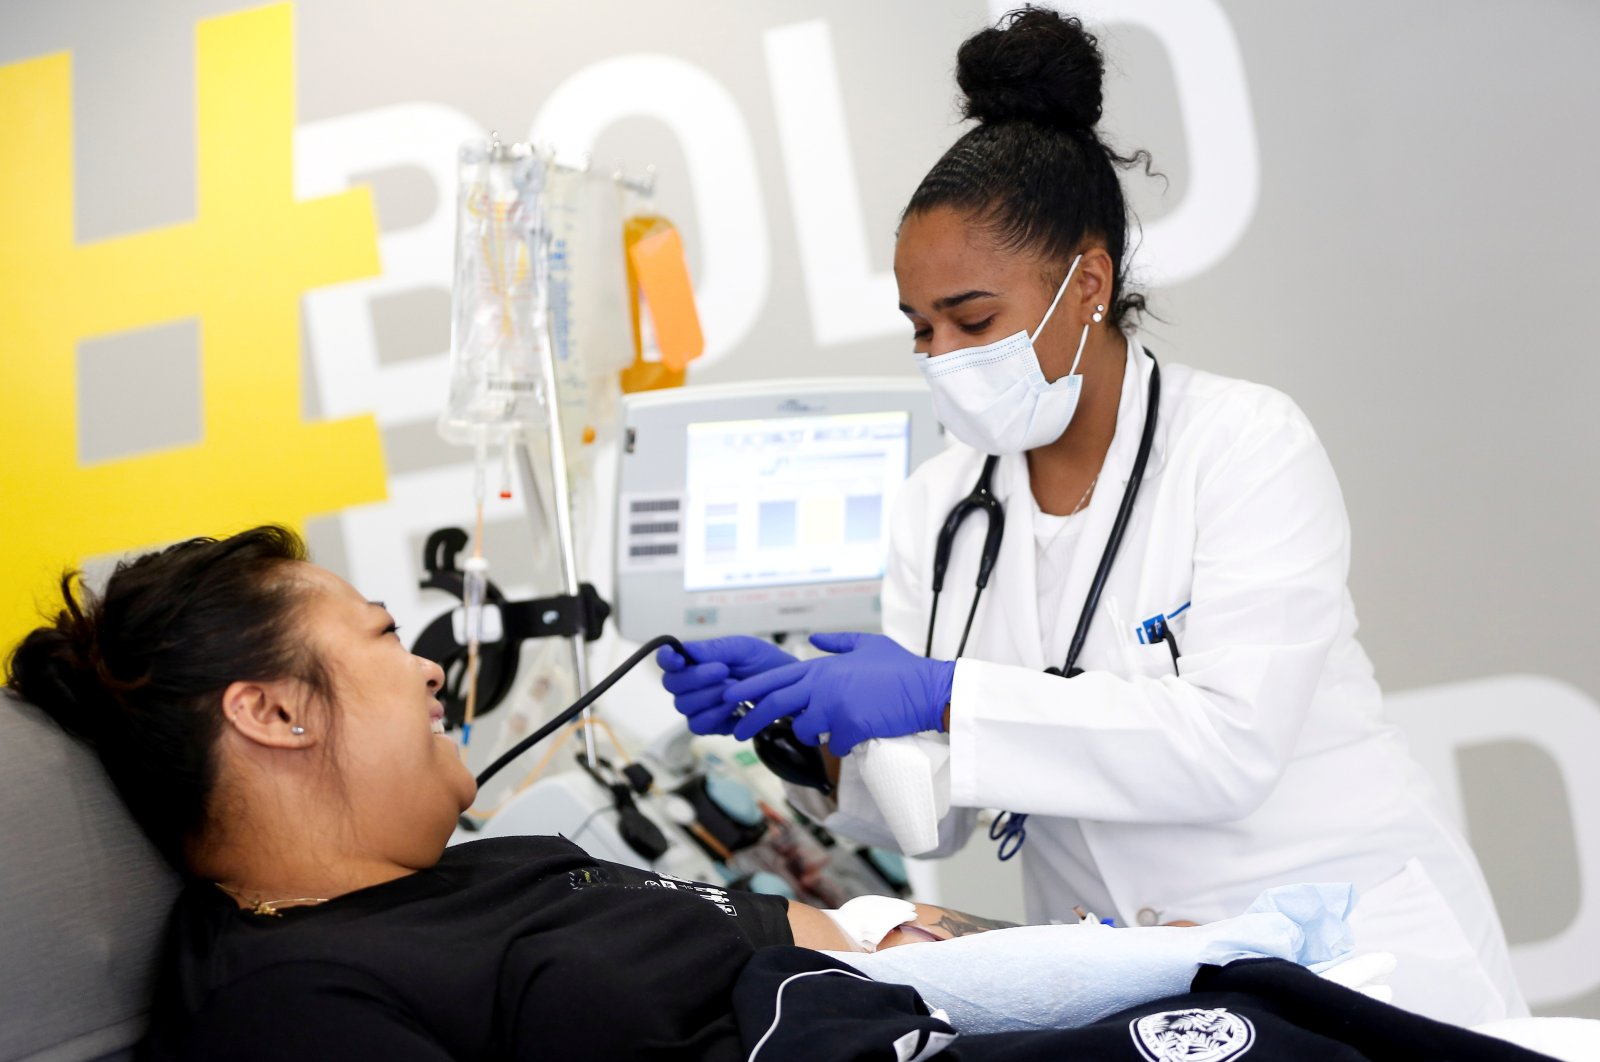 Phlebotomist Jenee Wilson talks with Melissa Cruz, an ER technician for Valley Medical Center, as she finishes donating convalescent plasma at the Central Seattle Donor Center of Bloodworks Northwest during the coronavirus outbreak in Seattle, Washington, U.S., April 17, 2020. (Reuters Photo)